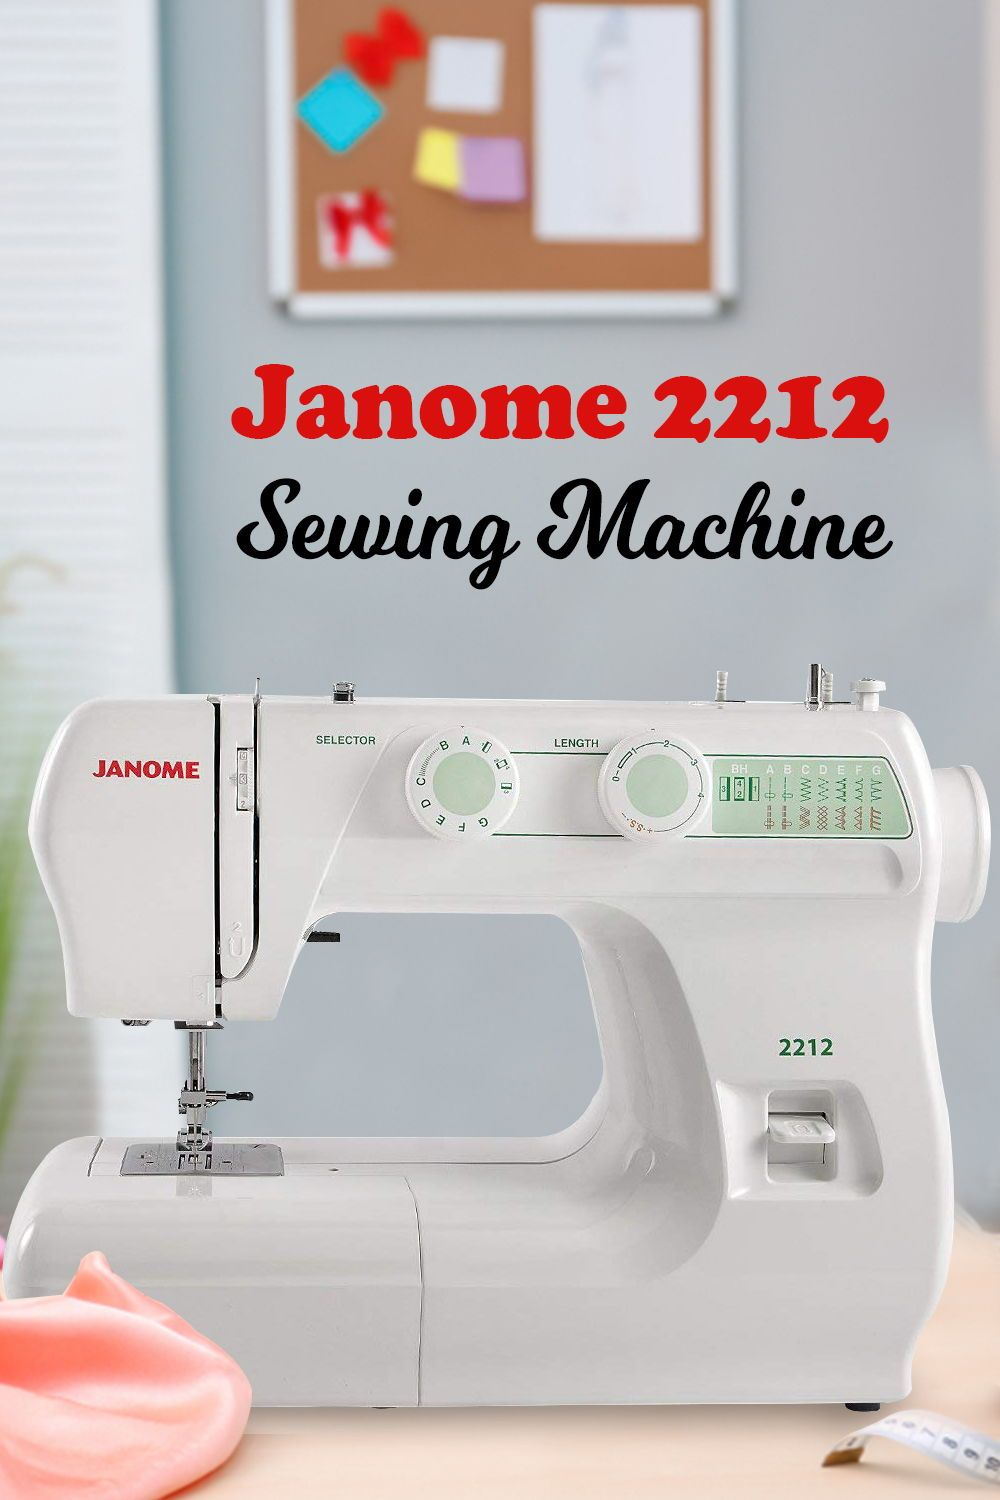 Top 10 Janome Sewing Embroidery Machines Feb 2020 Reviews